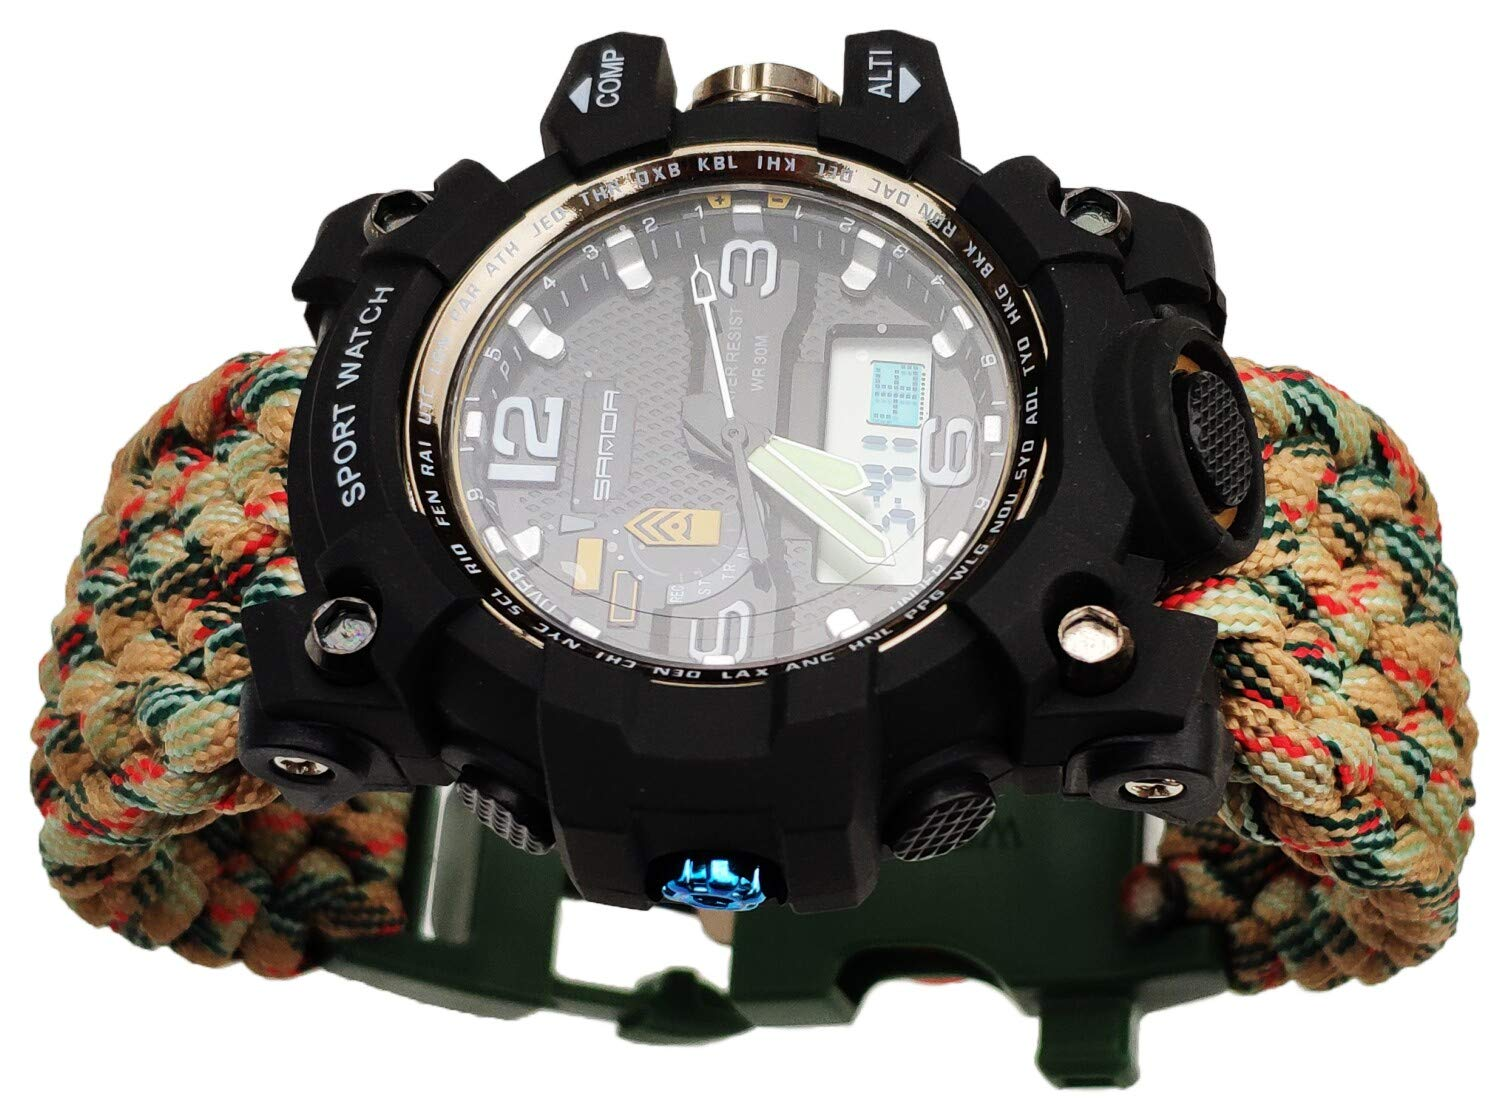 7'' Green Camo Handmade 550 Paracord Bracelet Watch Compass Water Resistant Date&Day Stopwatch Chronograph Alarm LED Backlight